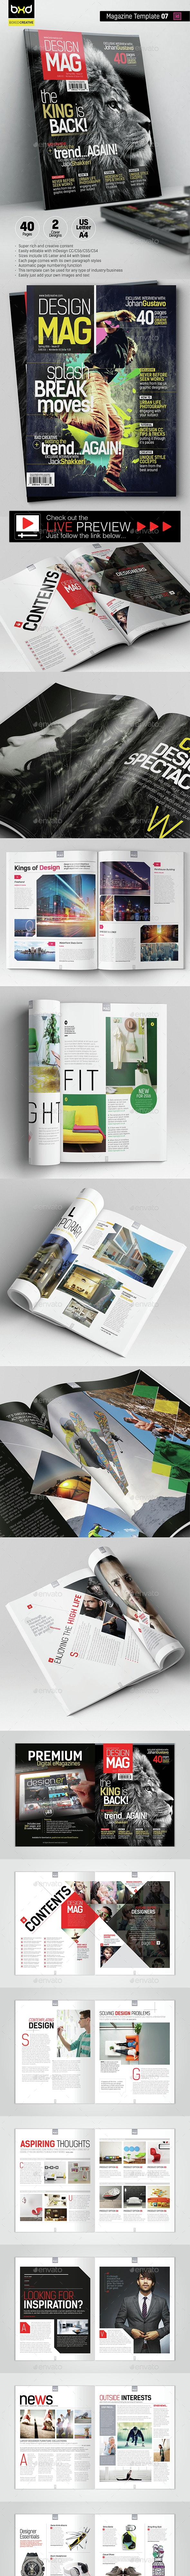 Magazine Template - InDesign 40 Page Layout V7 - Magazines Print Templates